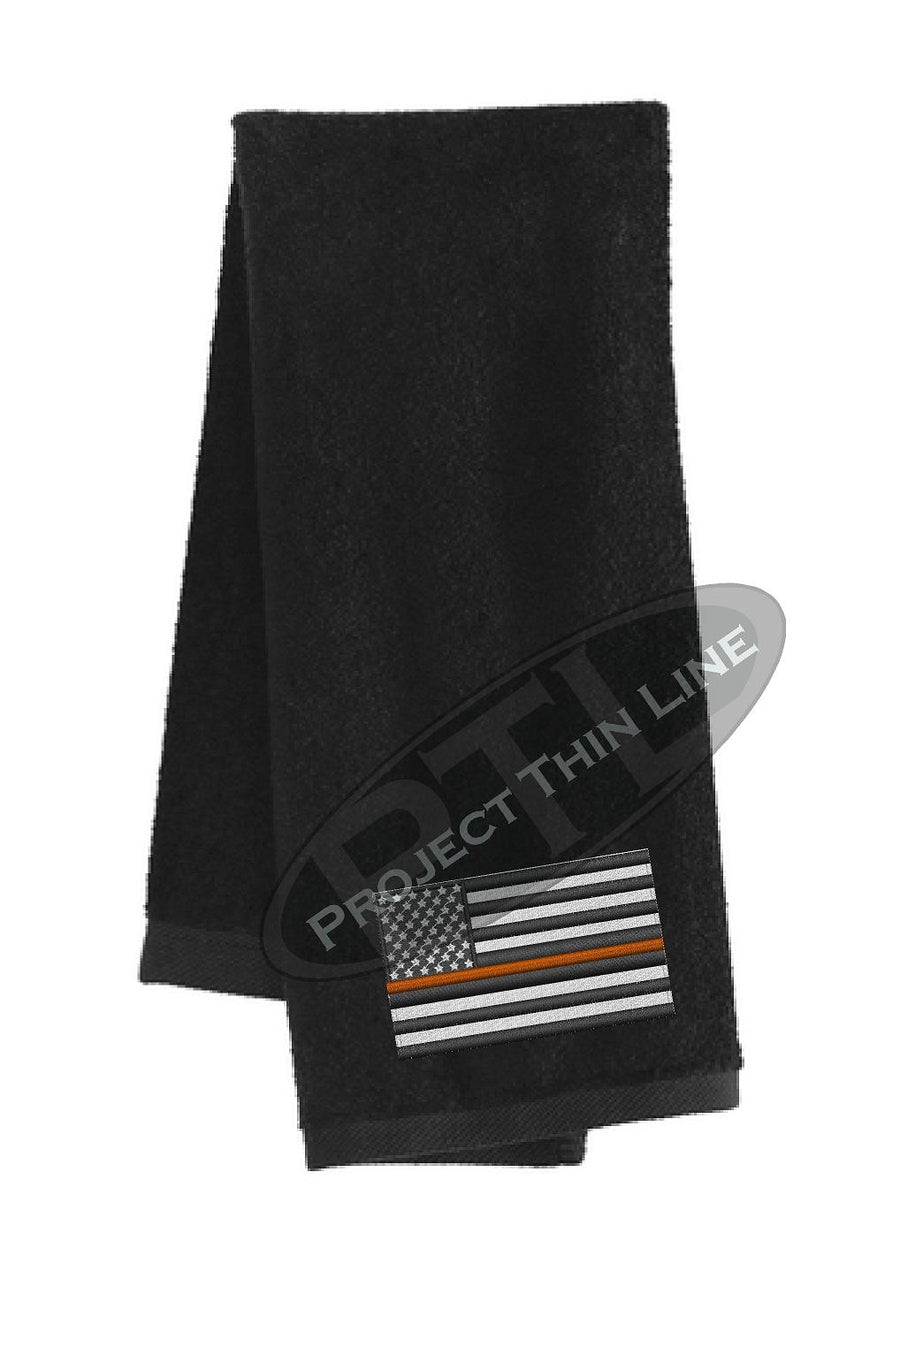 Thin ORANGE Line Flag Workout Gym Towel